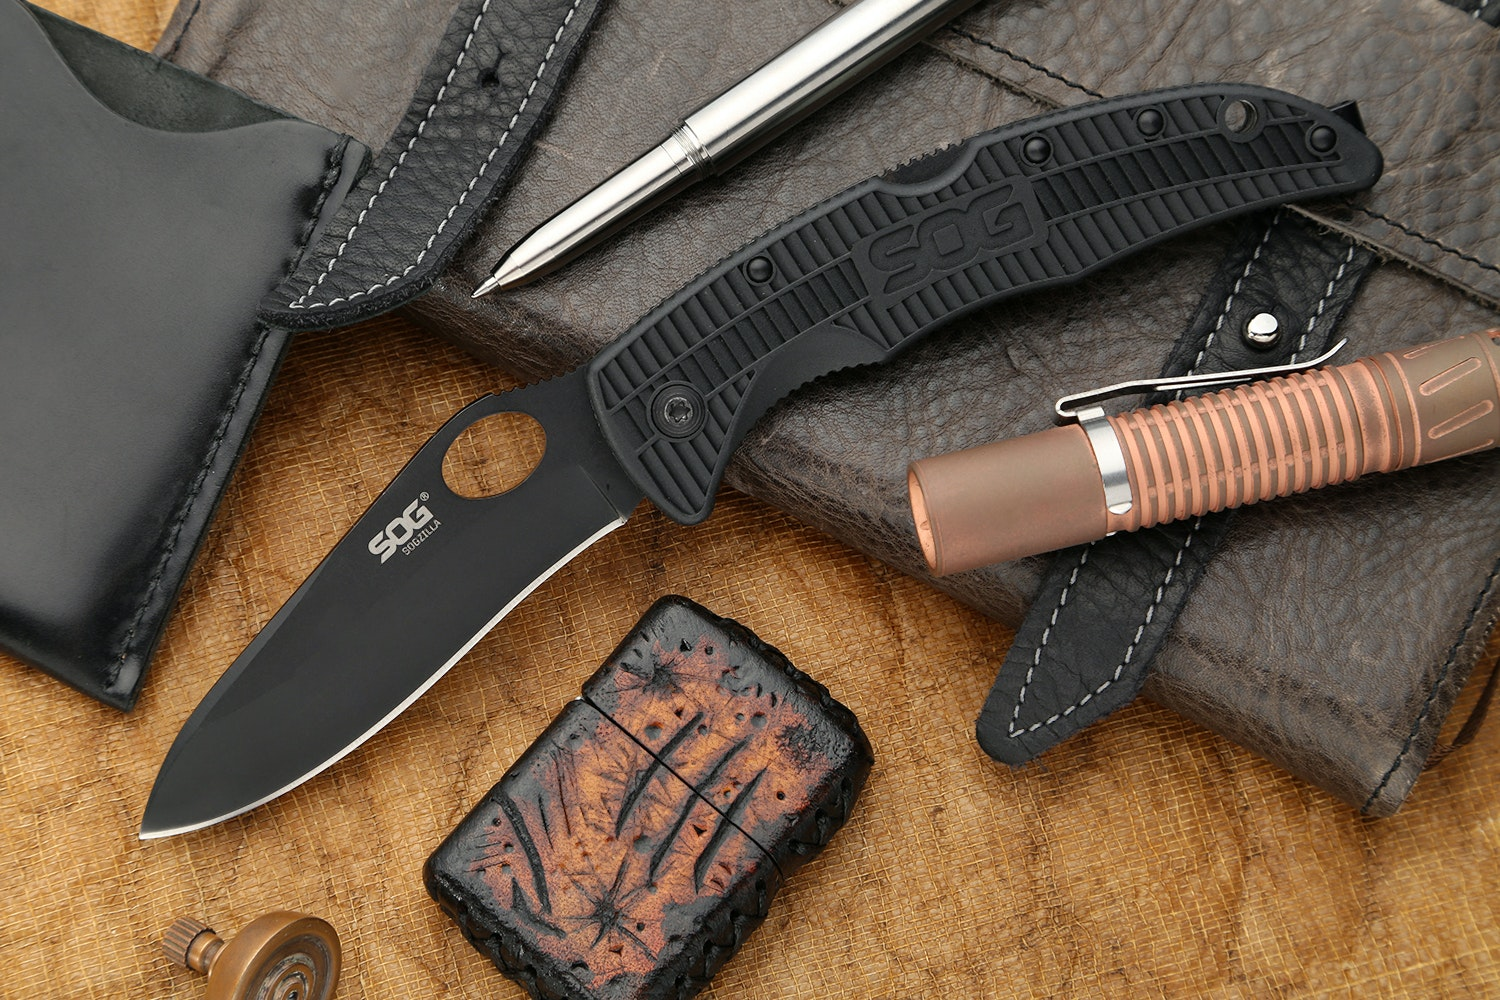 SOGzilla Large Folding Knife